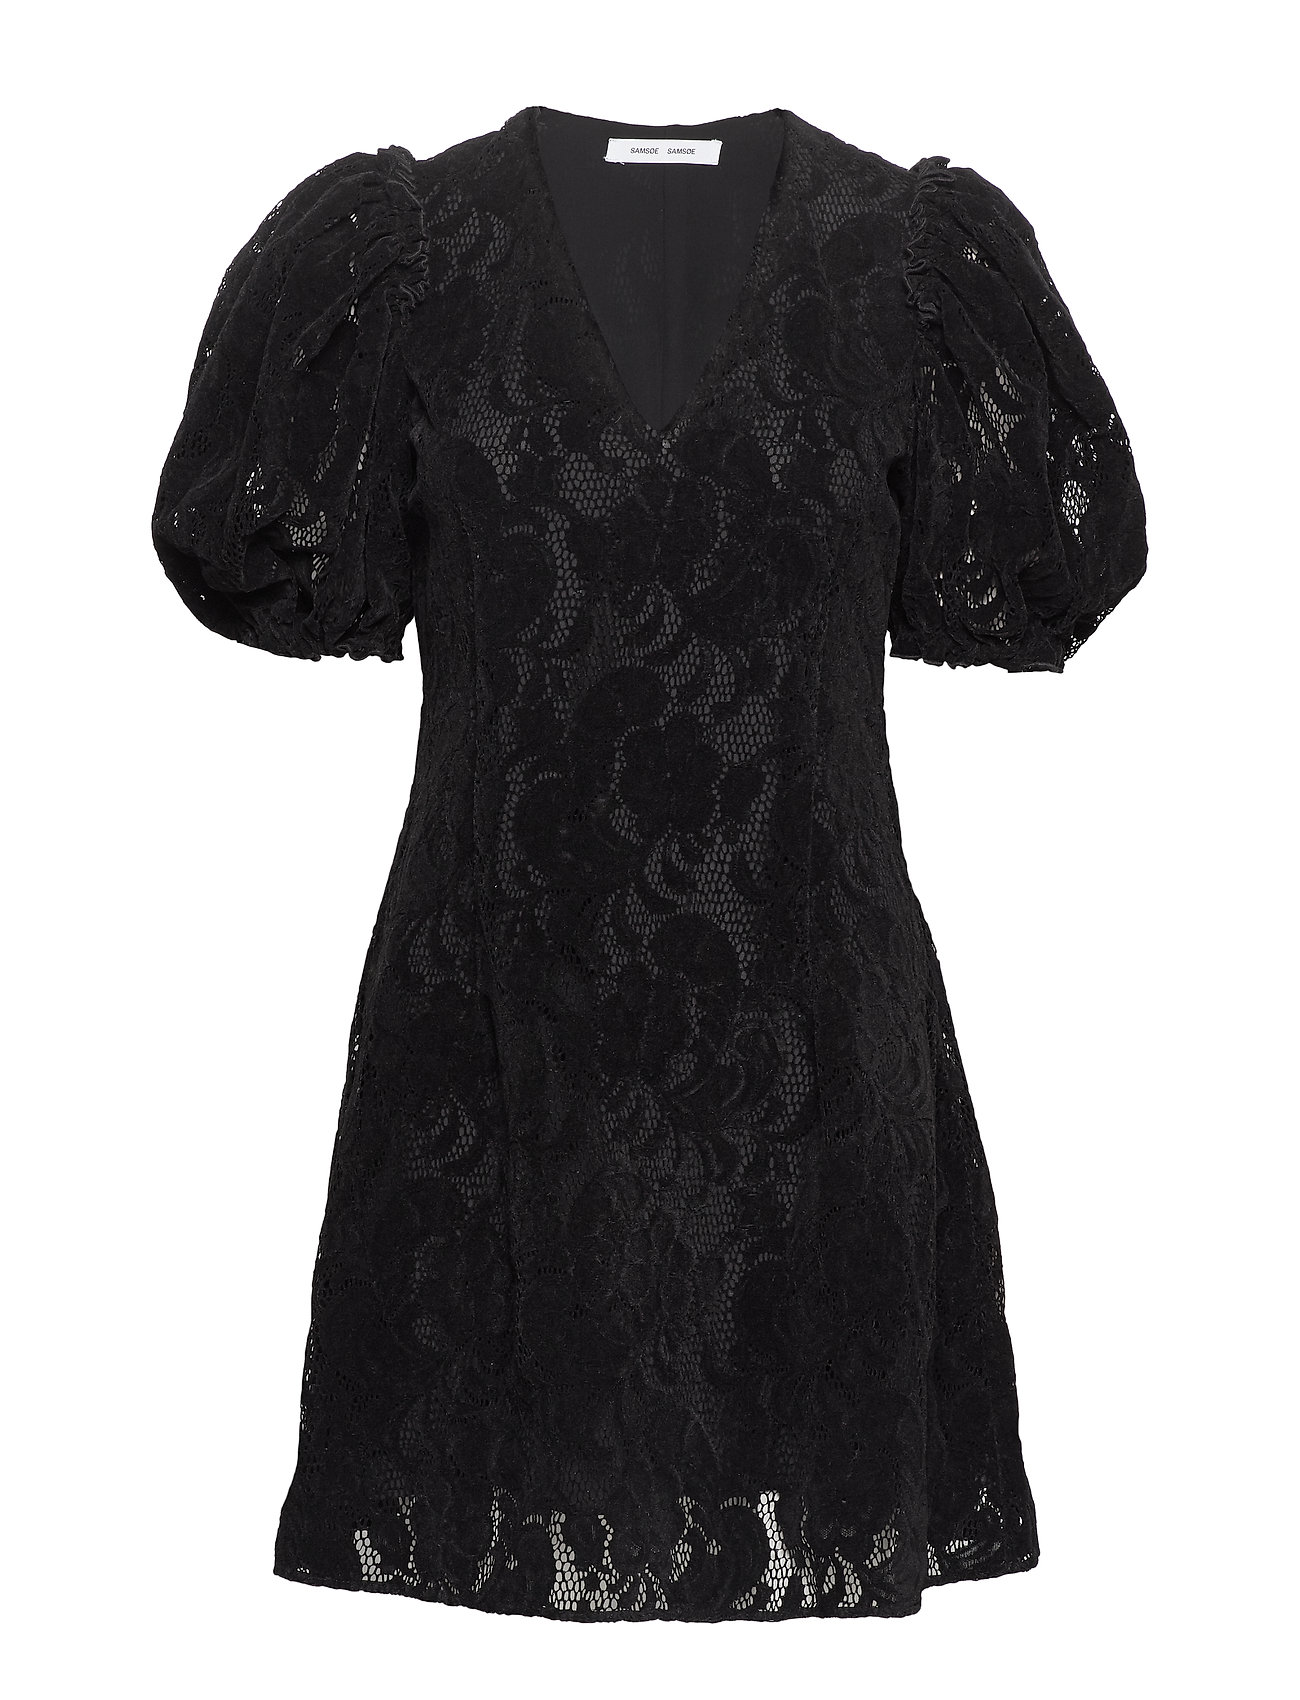 Samsøe & Samsøe Petulie dress 12735 - BLACK